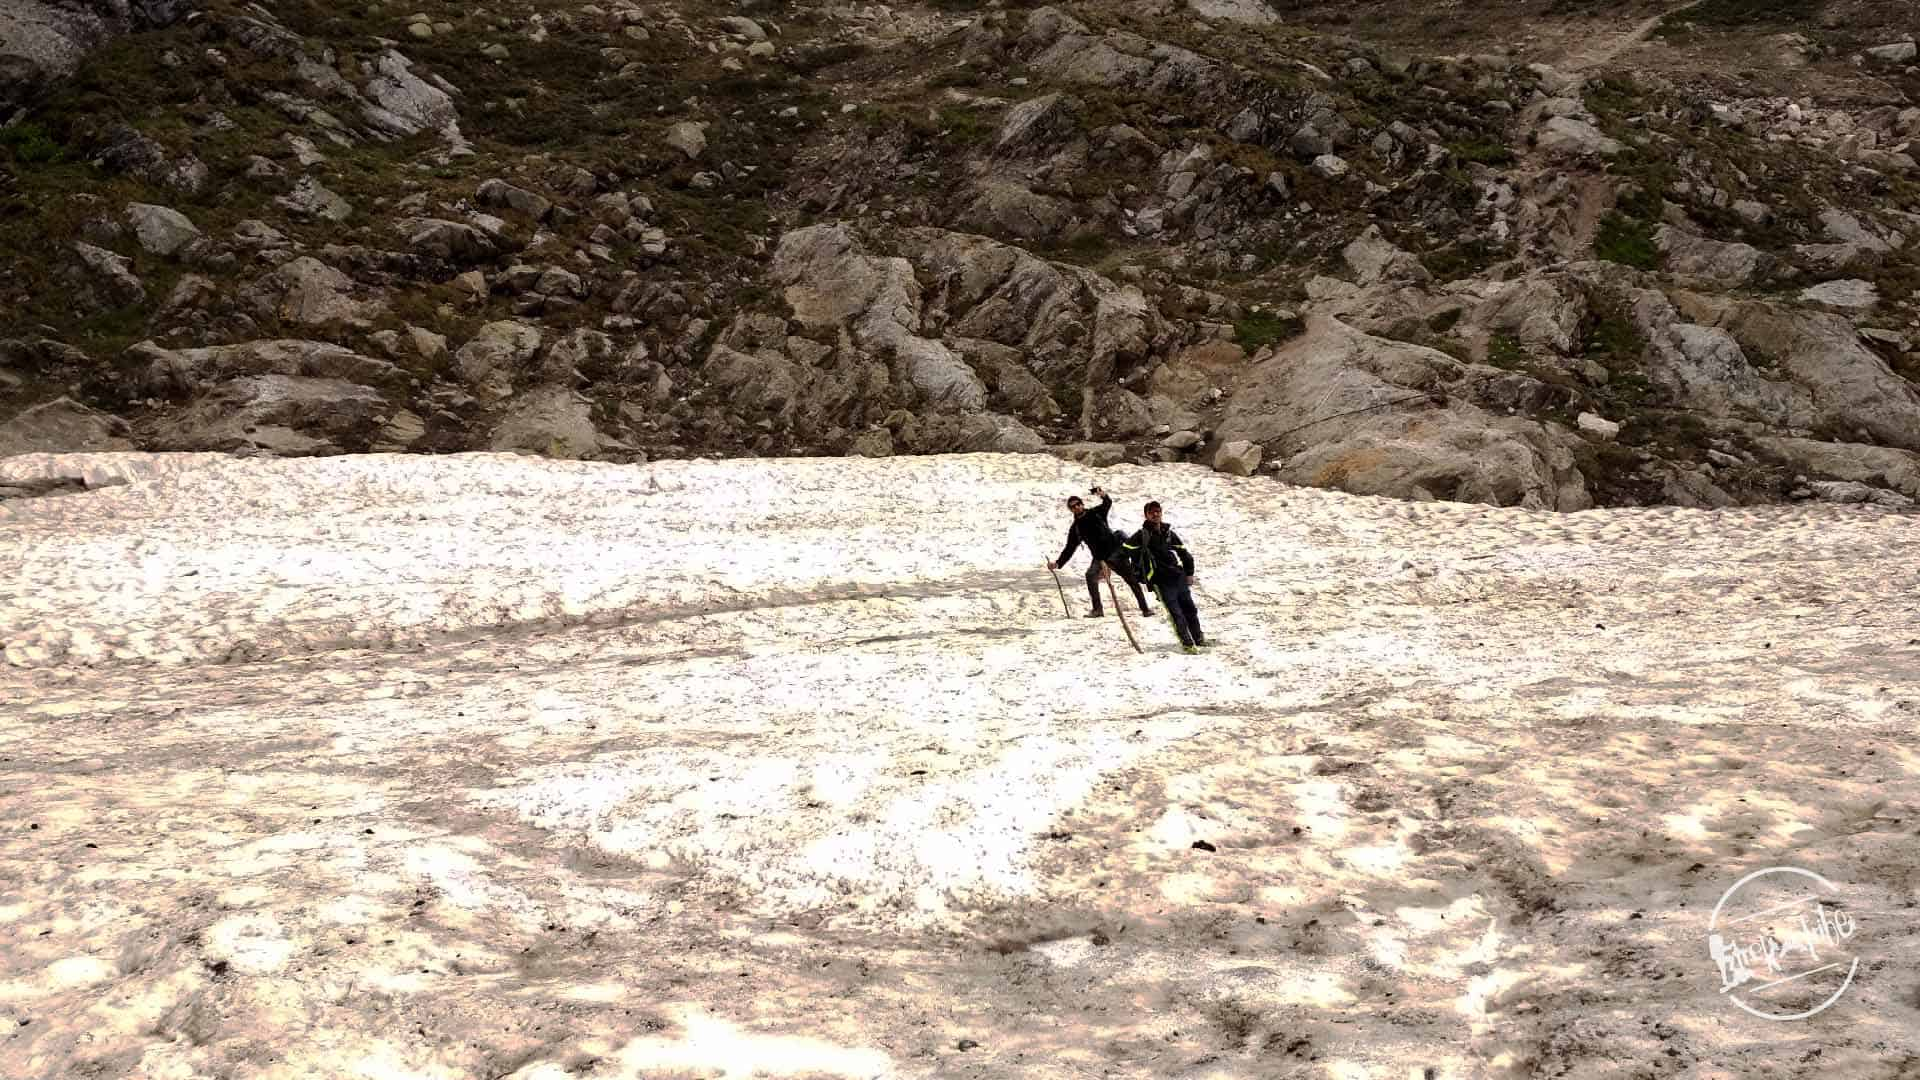 Trek to kinner kailash - crossing glacier